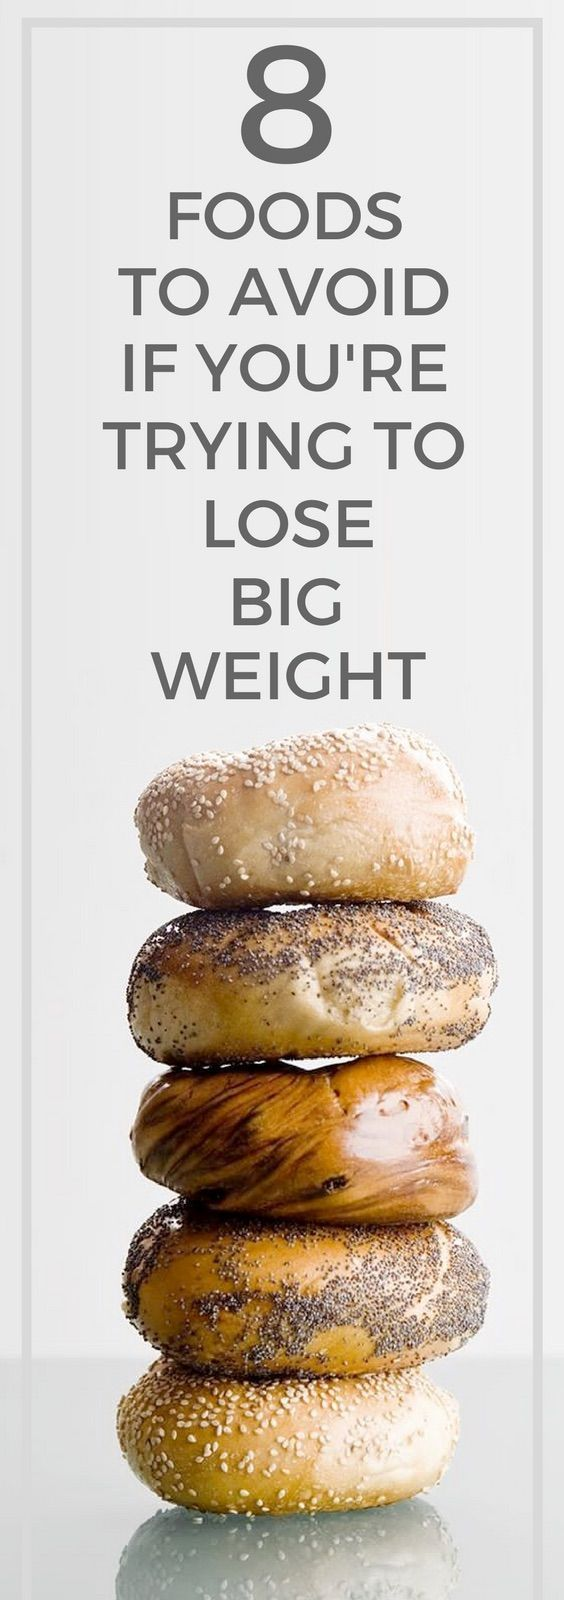 Forum on this topic: 8 Foods With A Big Weight Loss , 8-foods-with-a-big-weight-loss/